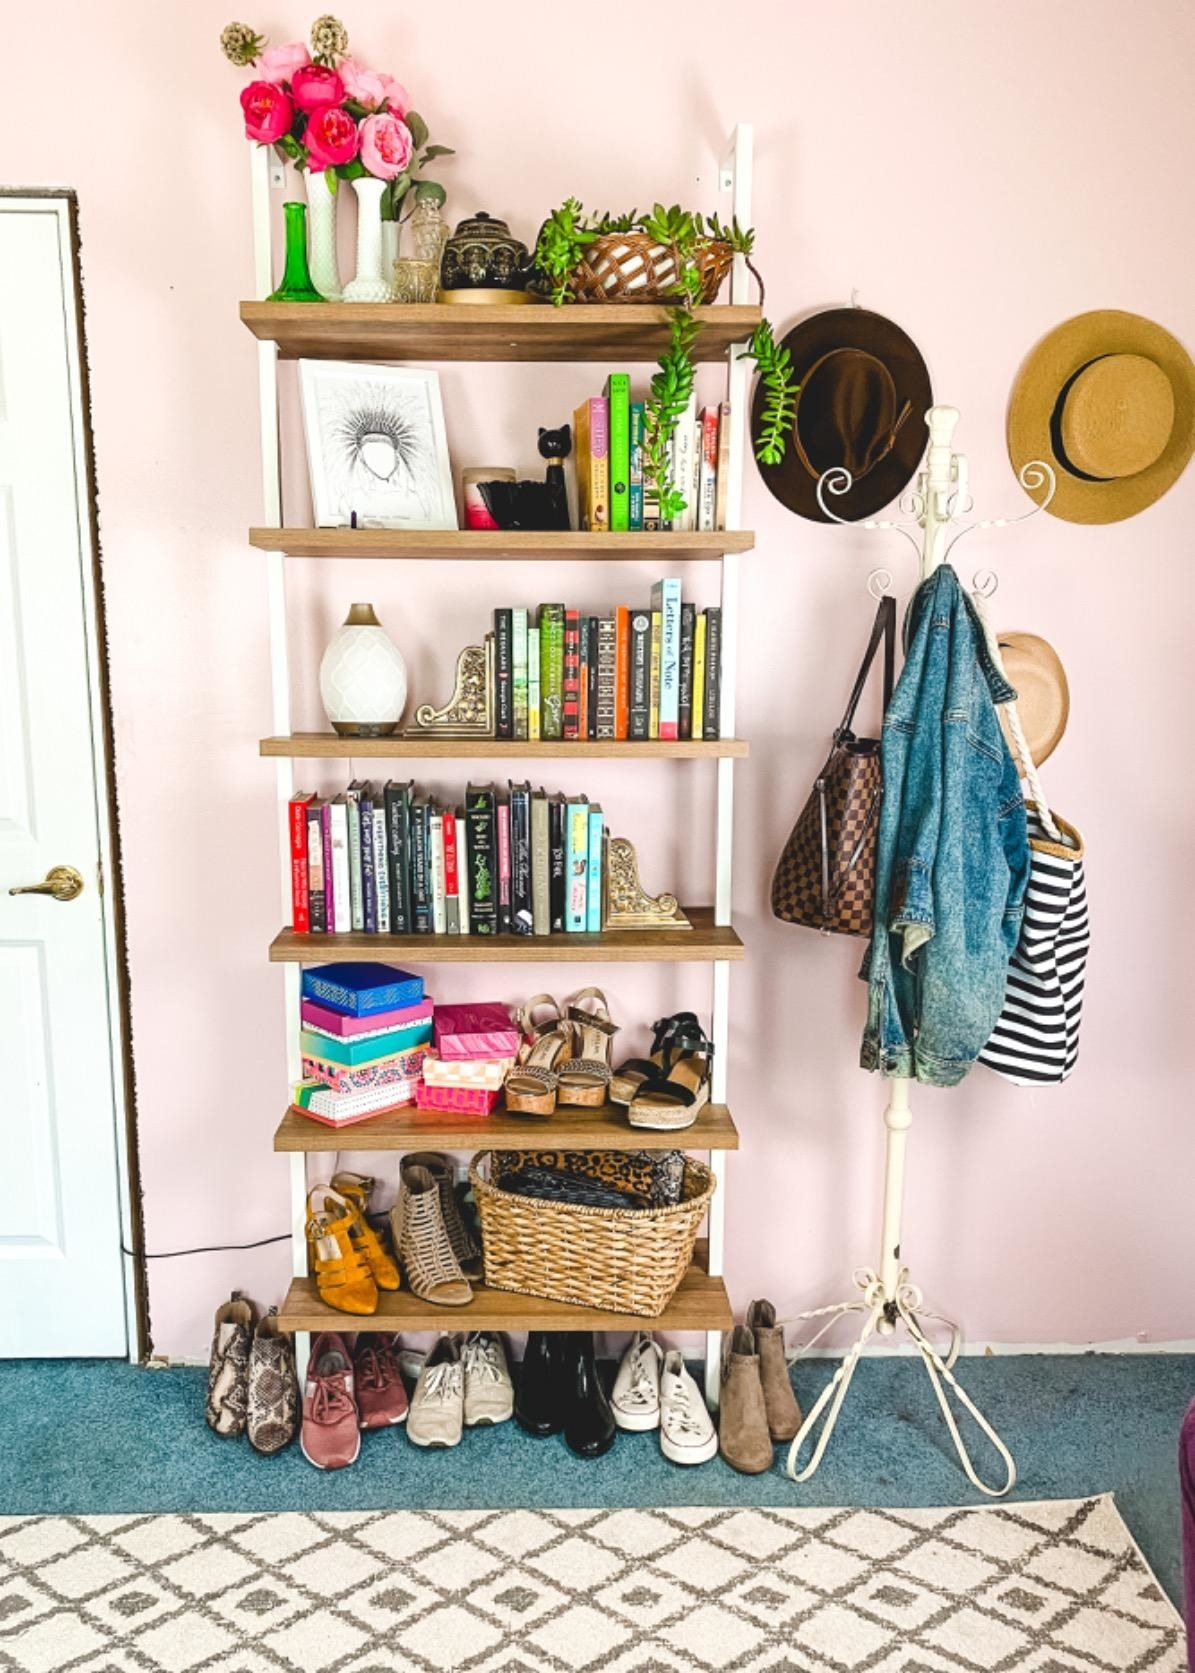 Reviewer pic of the six-tier bookshelf with light brown wood shelves and white rods attached to the wall with books and trinks on the top four shelves and assorted shoes and accessories on the bottom shelves